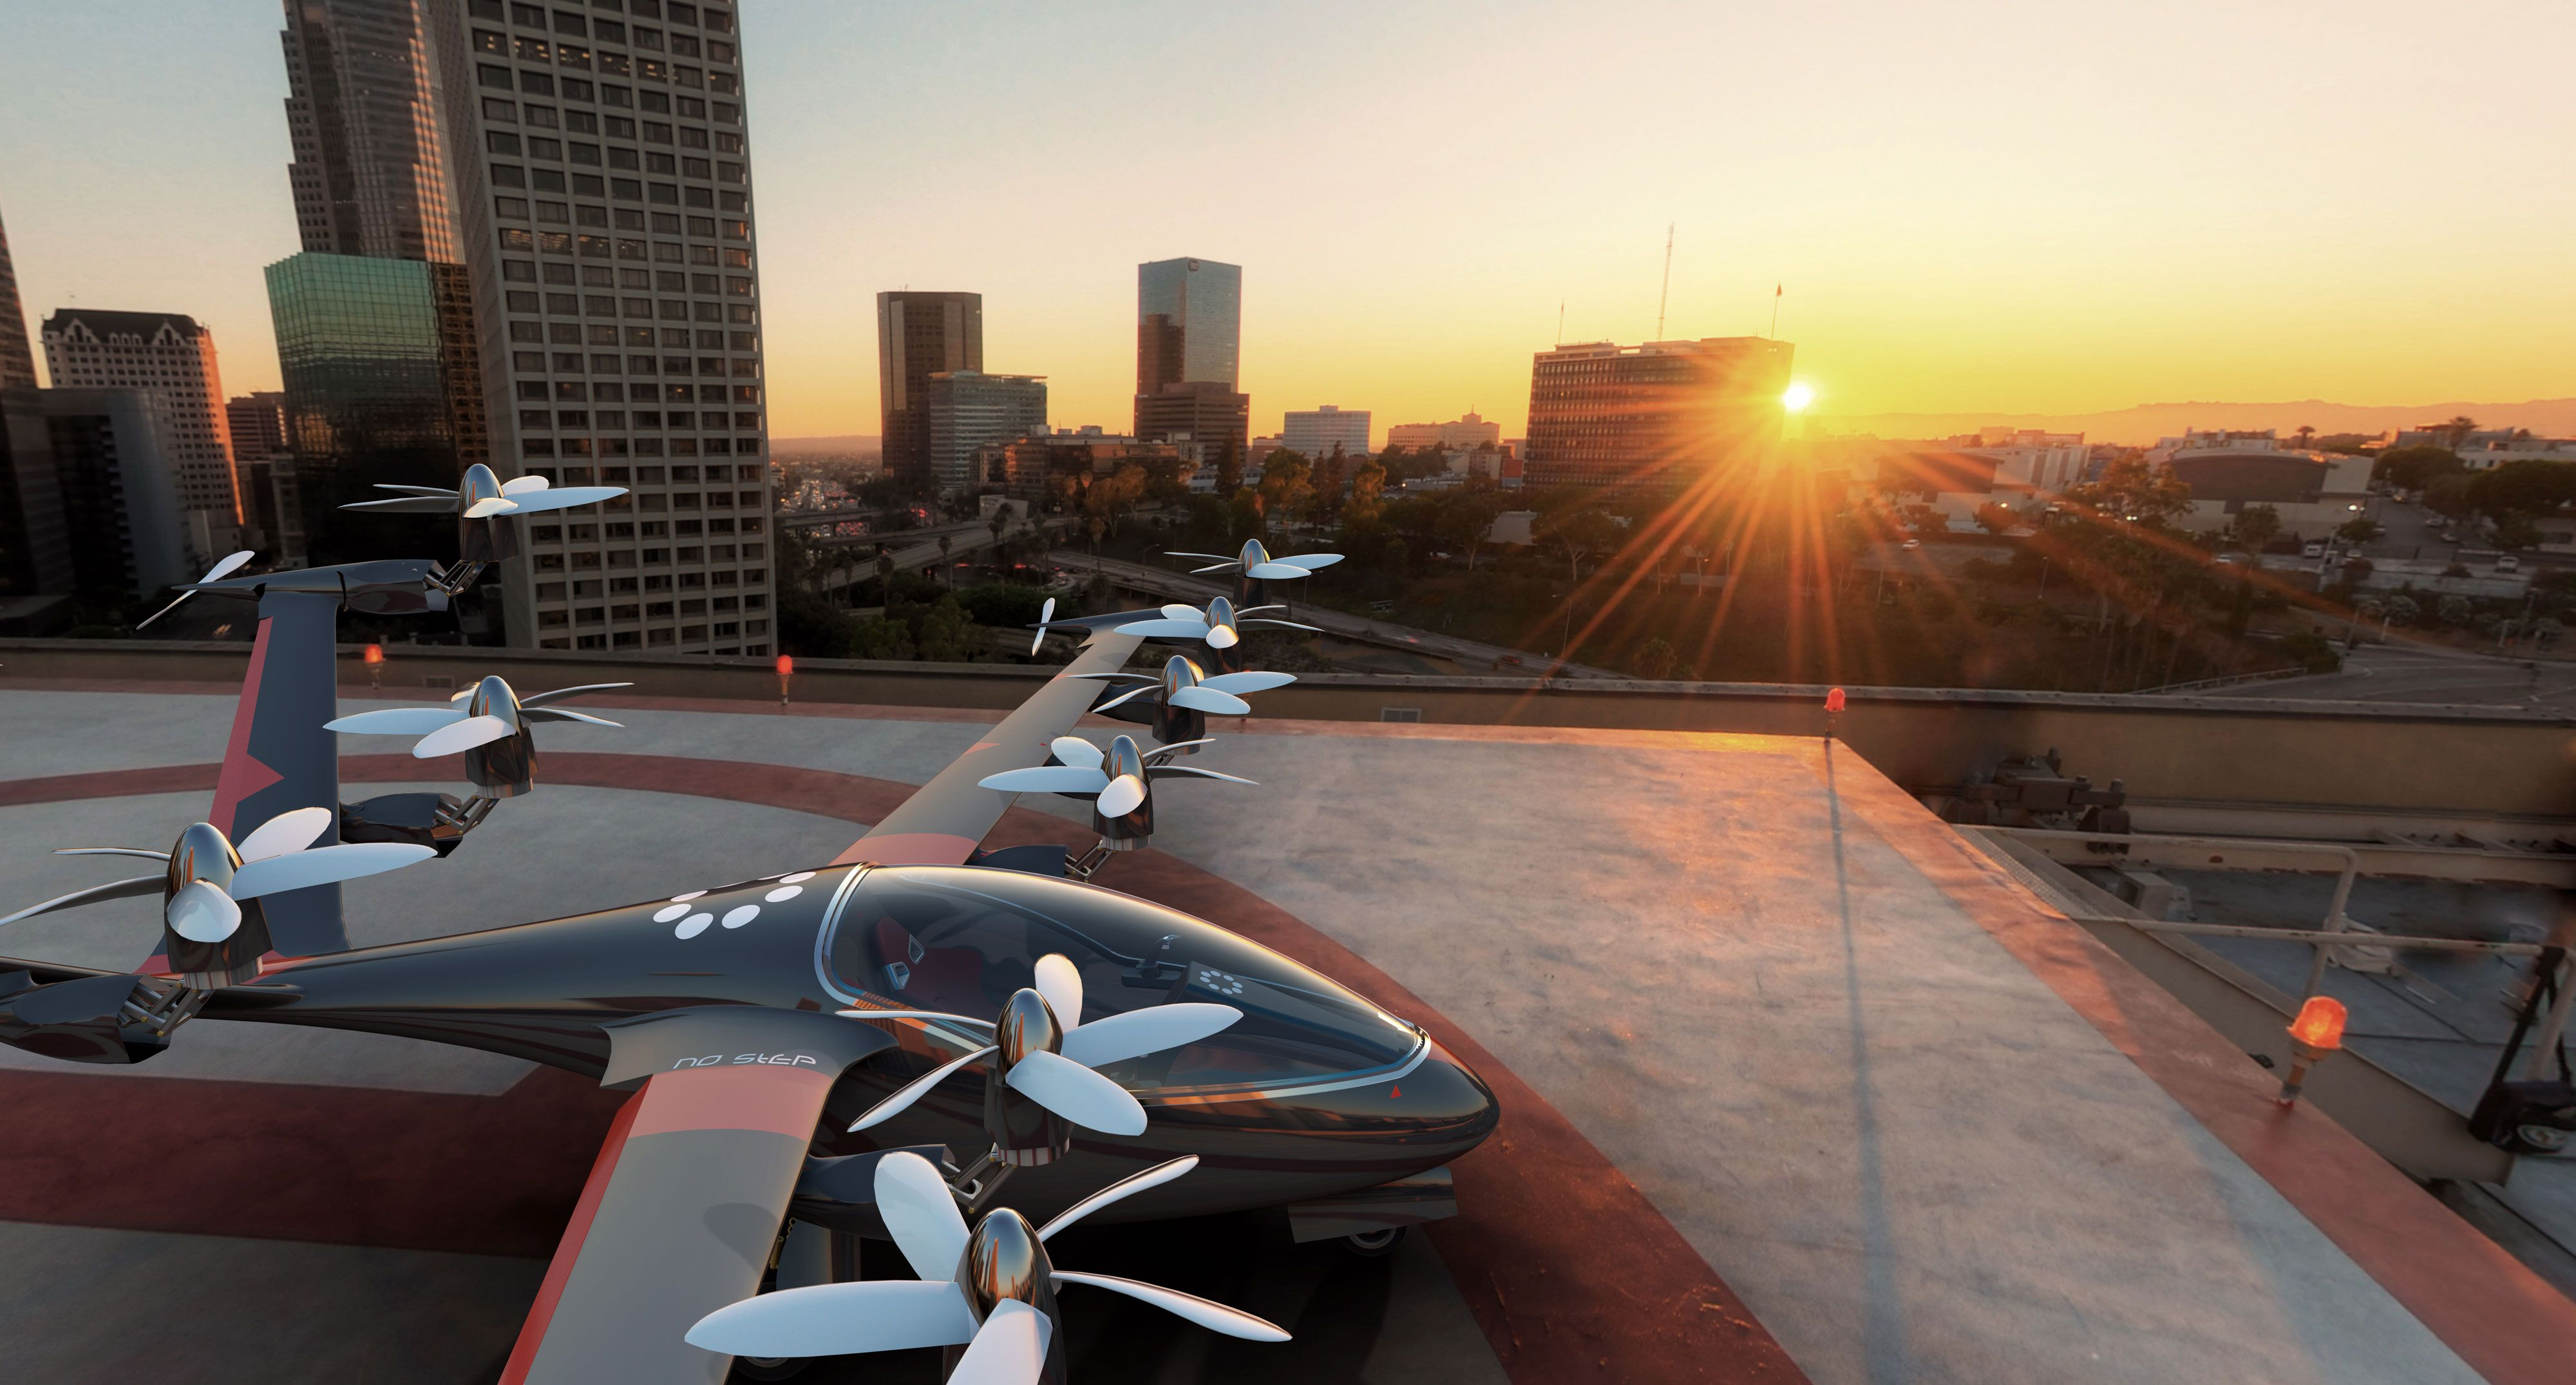 Joby S2 | Joby Aviation | By combining innovations in battery ...